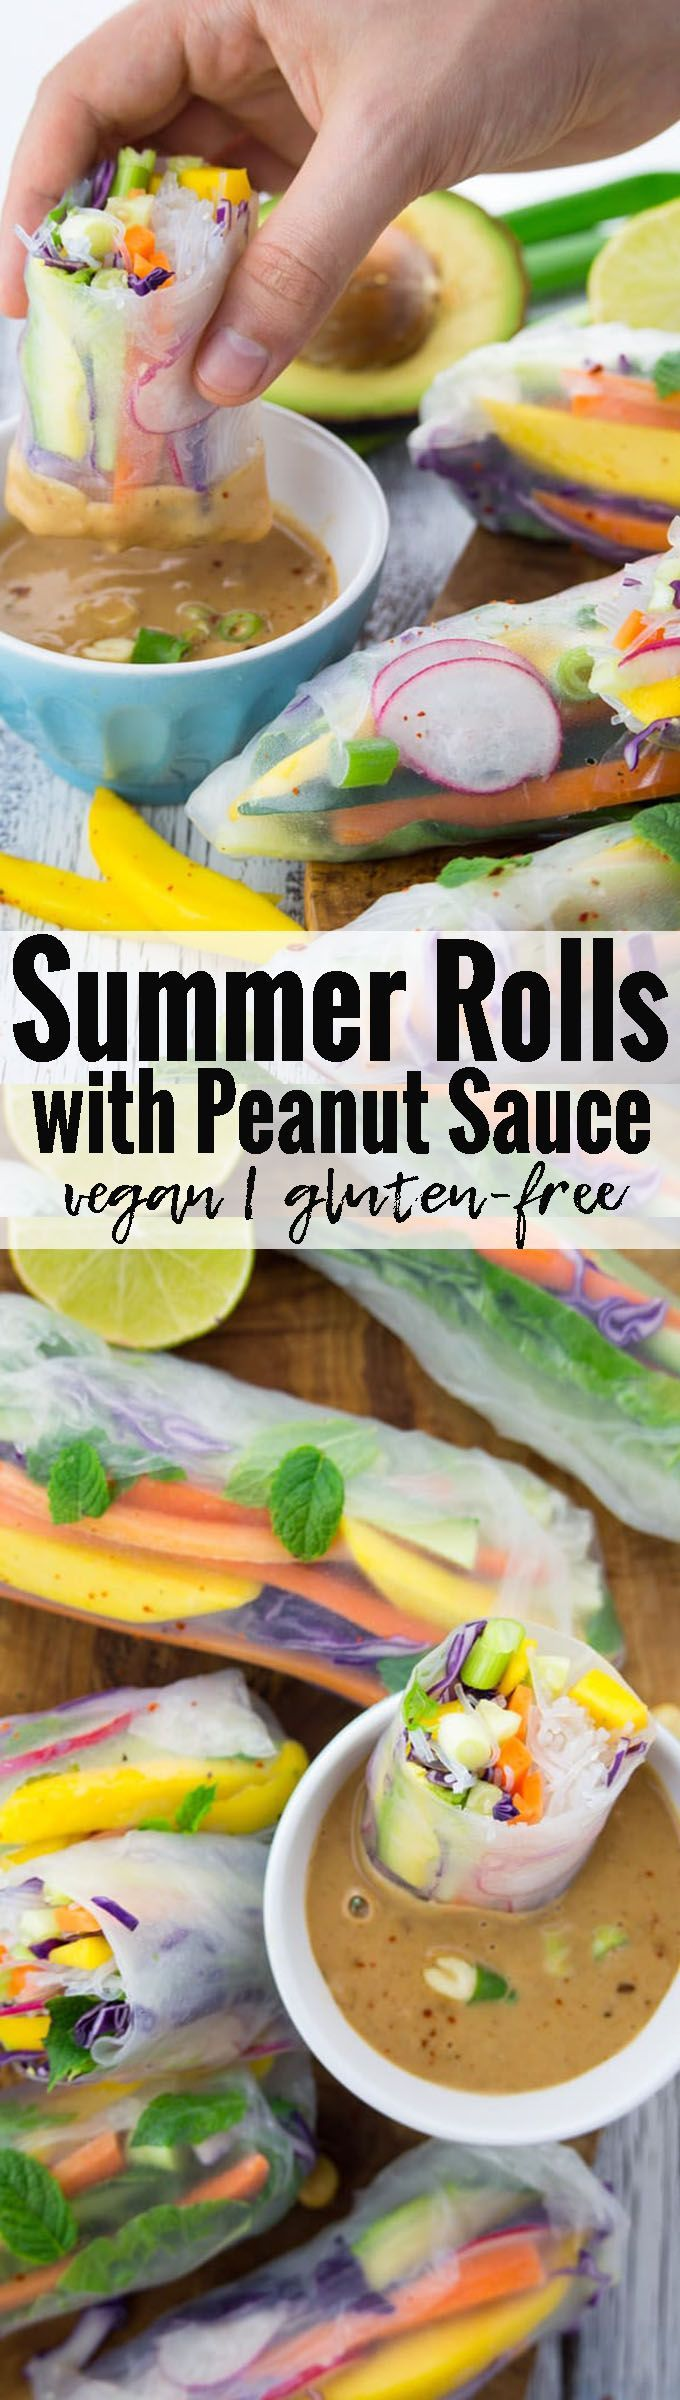 These vegan summer rolls with avocado, mango, and …